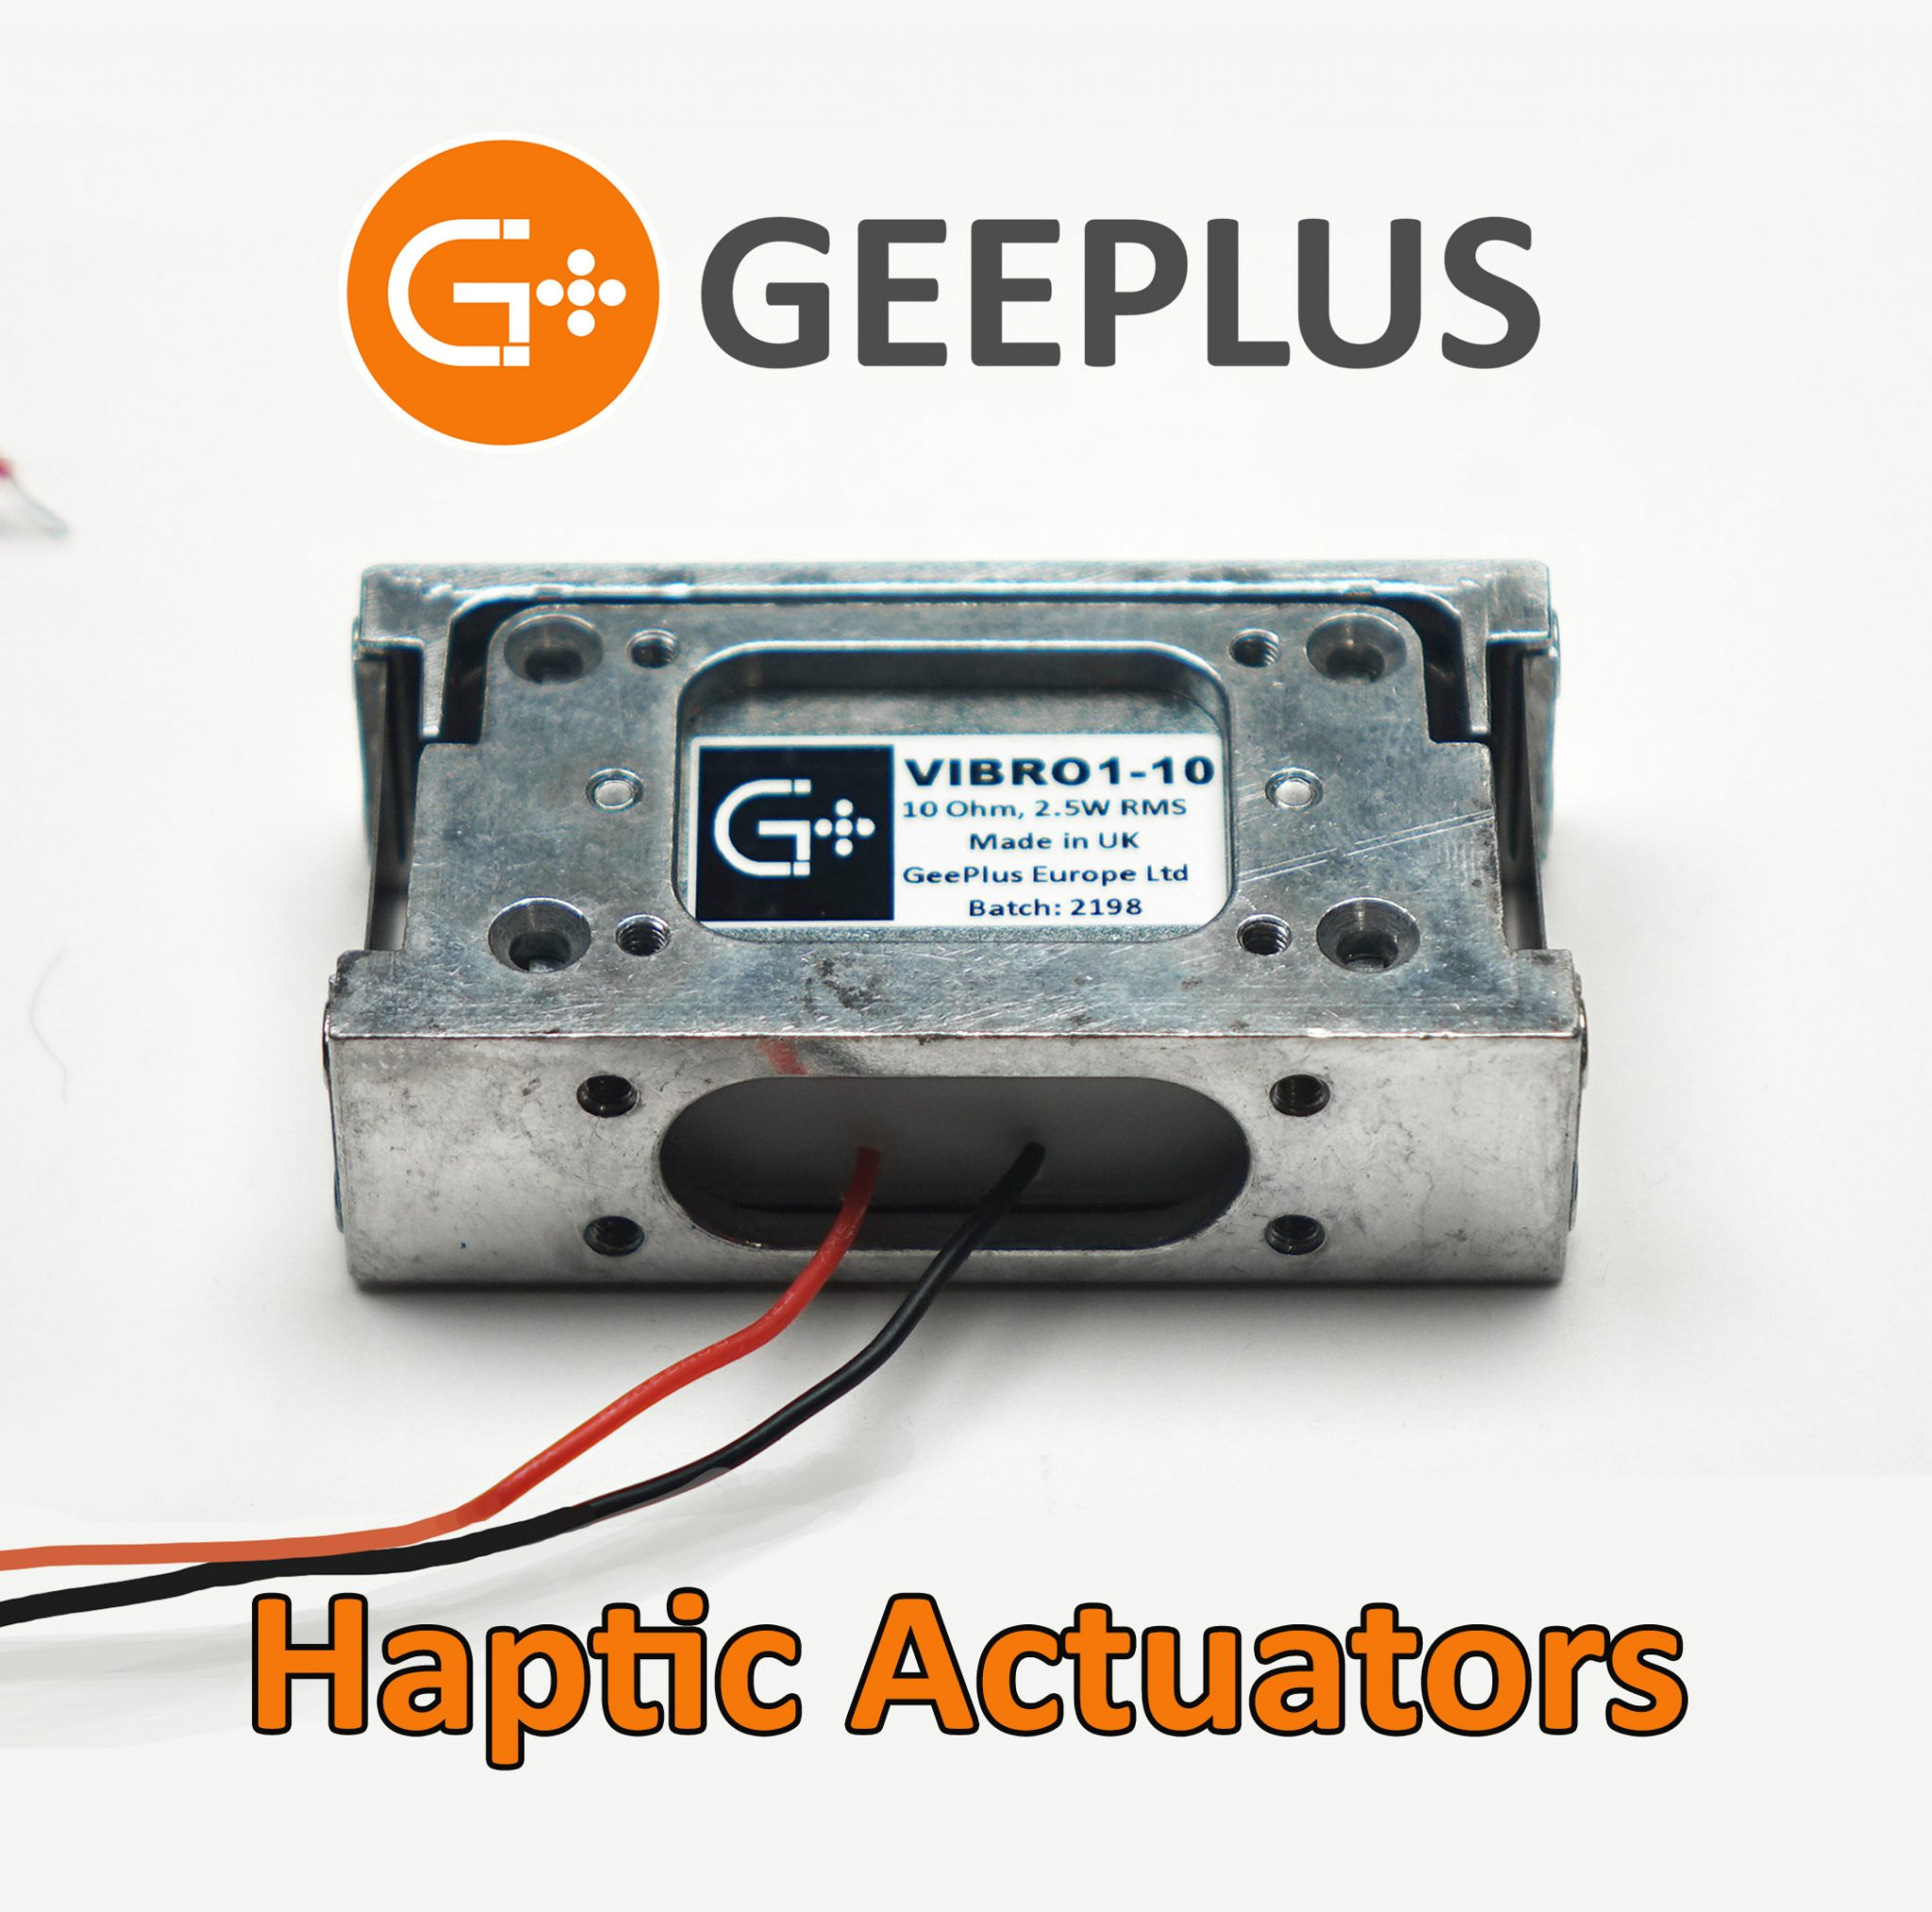 Vibrating Haptic Actuators by Geeplus